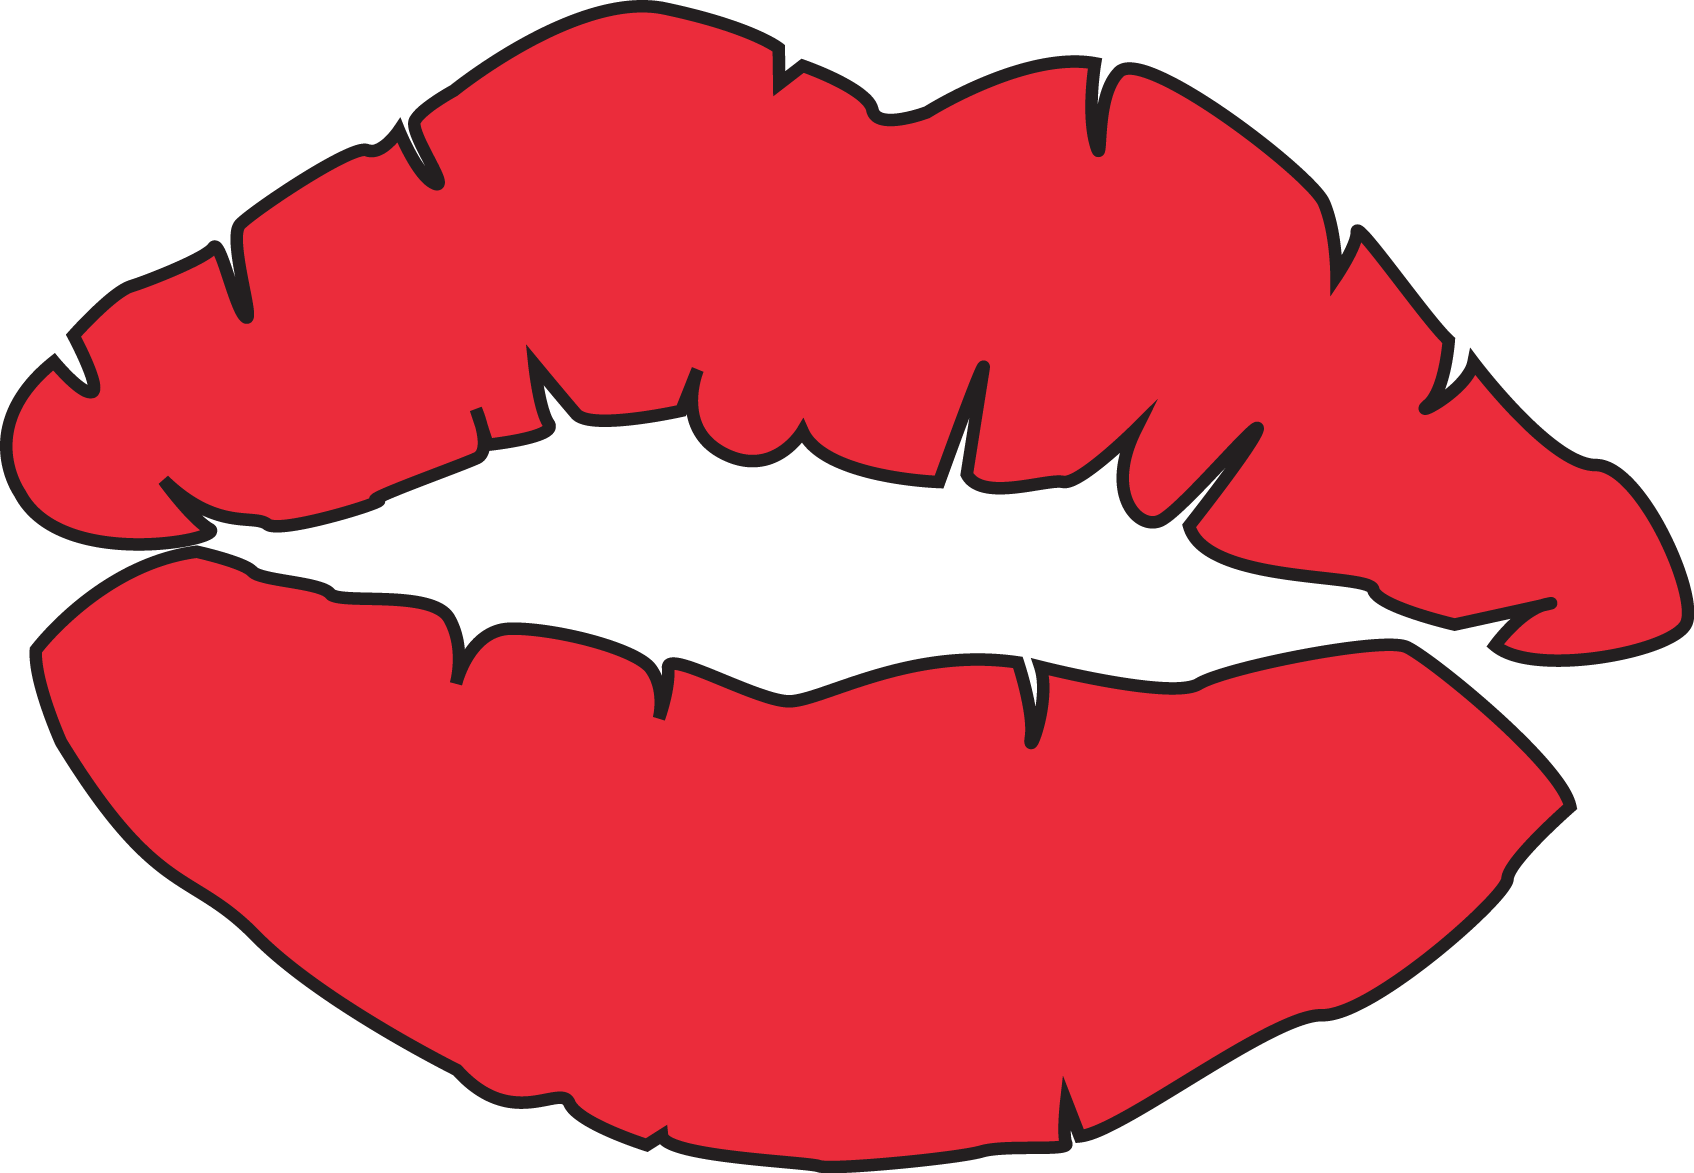 1694x1173 Free Red Lips Clipart Clipart Image